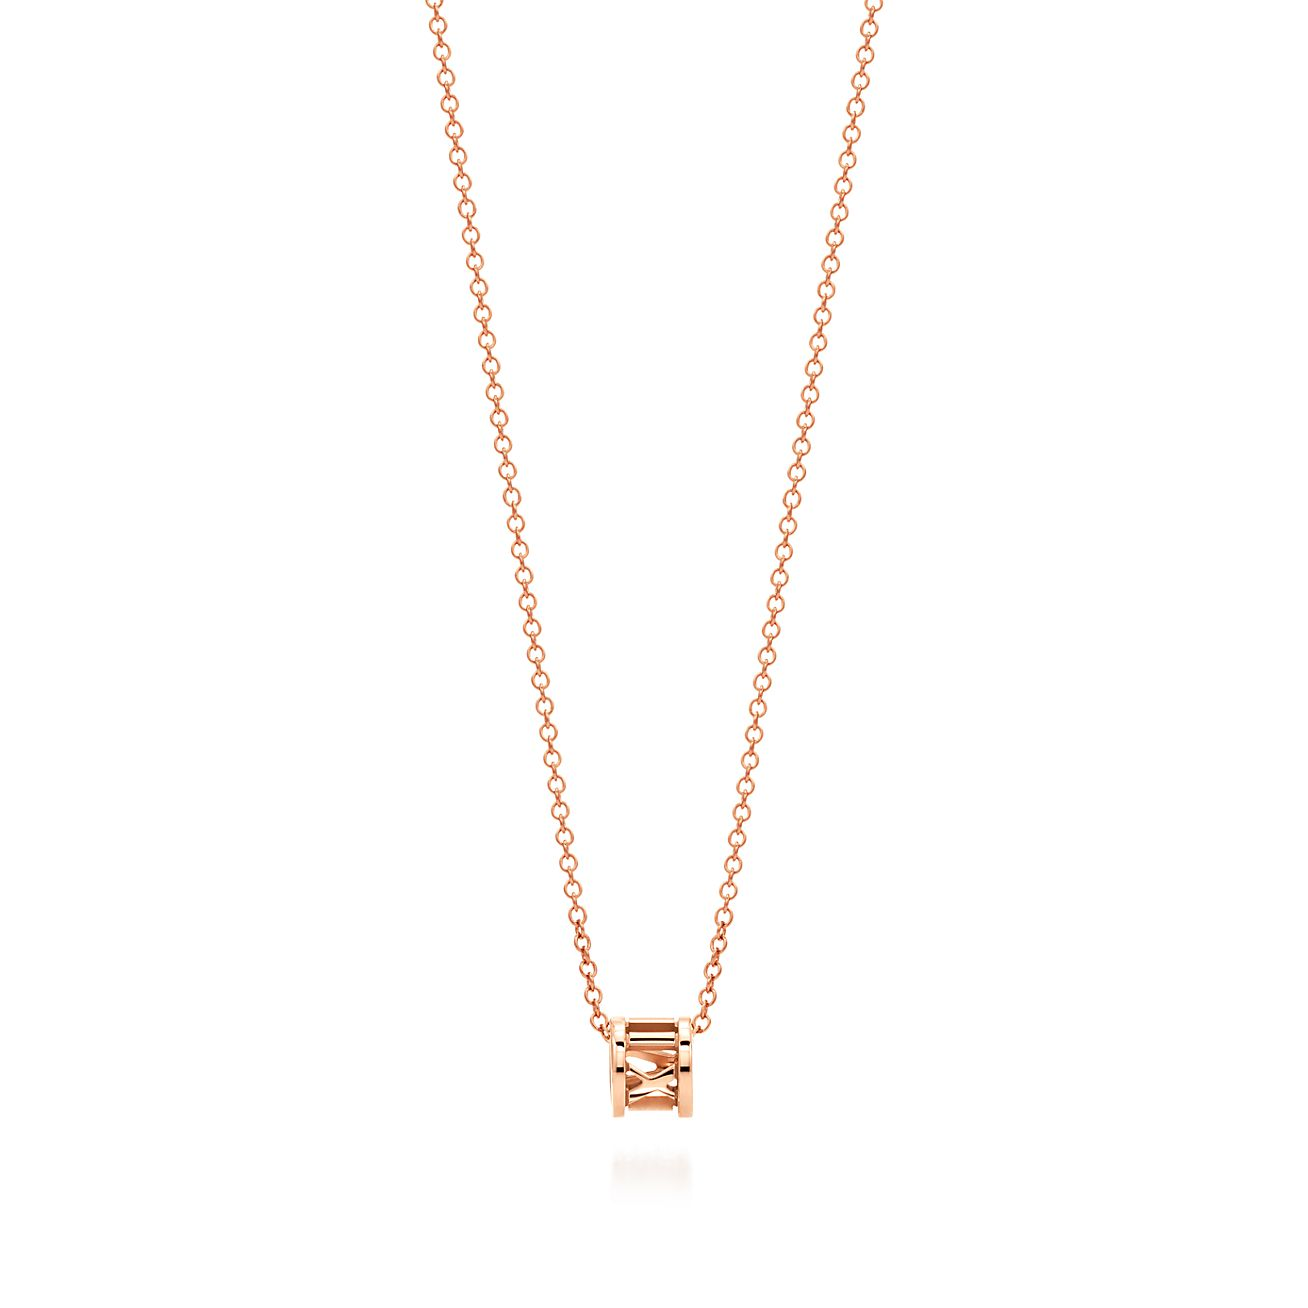 towson new debut photo of atlas collection credit pendant co at tiffany the